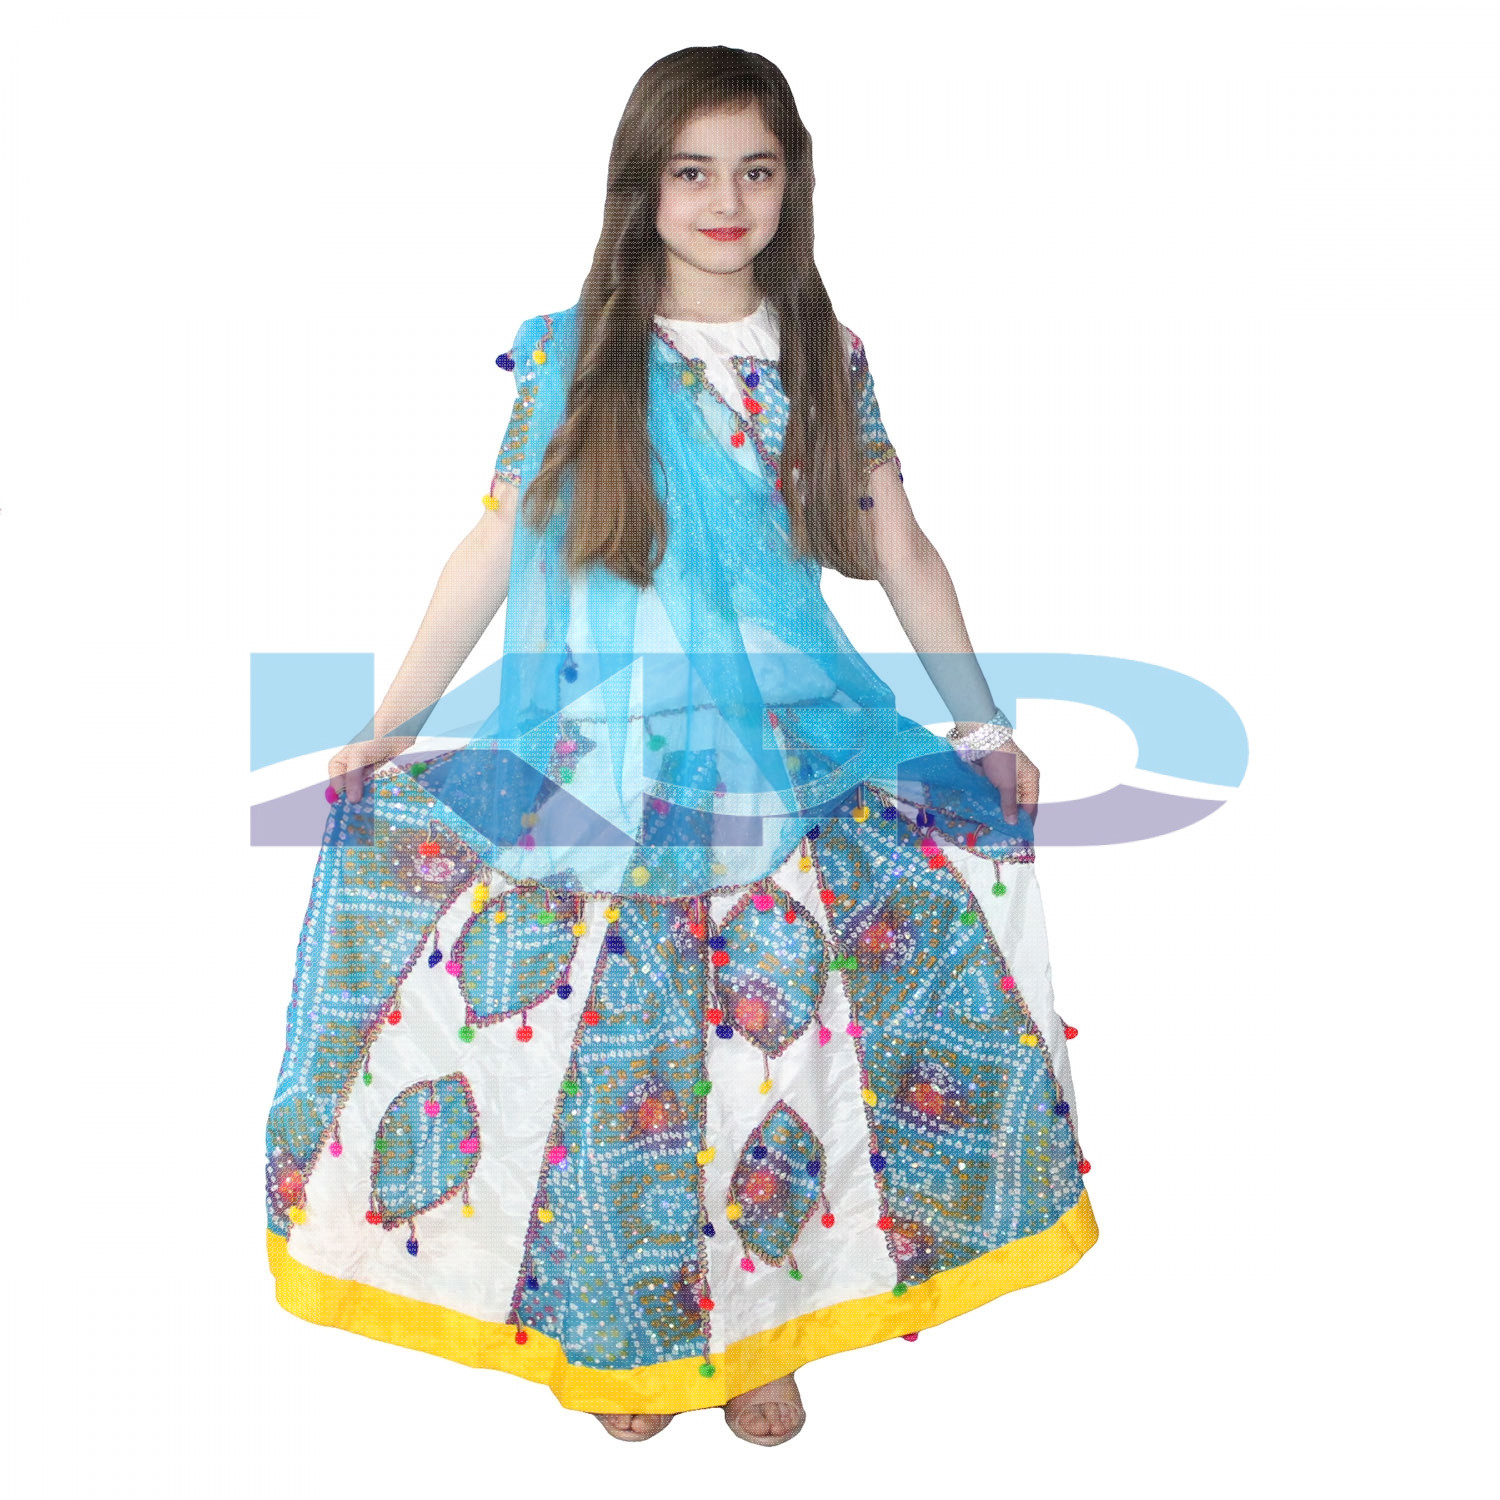 Gujrati Girl Cream Costume For Kids/Traditional Gujrati Dress For Girls/Navratri Garba Dress/For Kids Annual function/Theme Party/Competition/Stage Shows/Birthday Party Dress